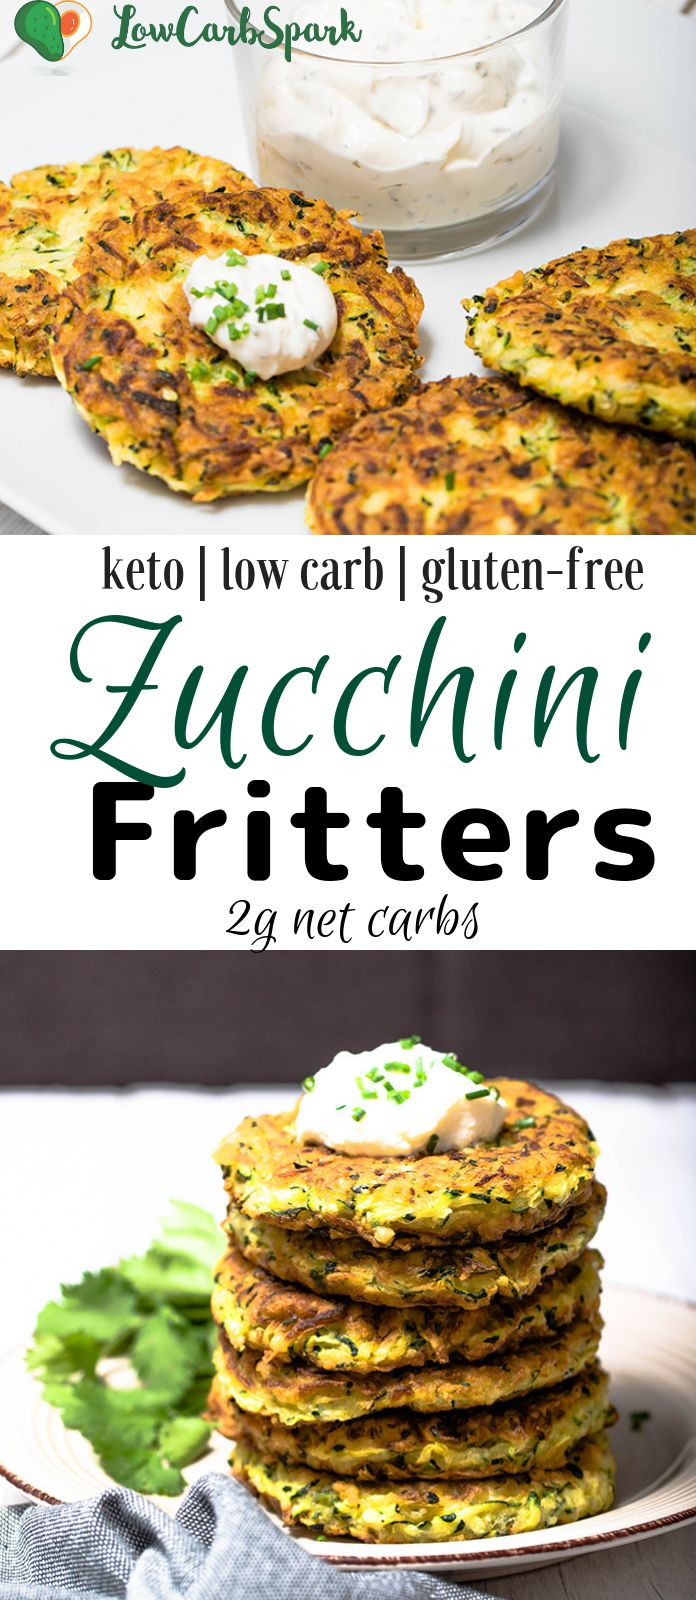 These zucchini fritters are extremely easy to make, low in carbs and family friendly. Keto zucchini pancakes that are delicious served warm with sour cream, fantastic for meal prep and the perfect snack for summer. #zucchinifritters #zucchini #ketorecipes